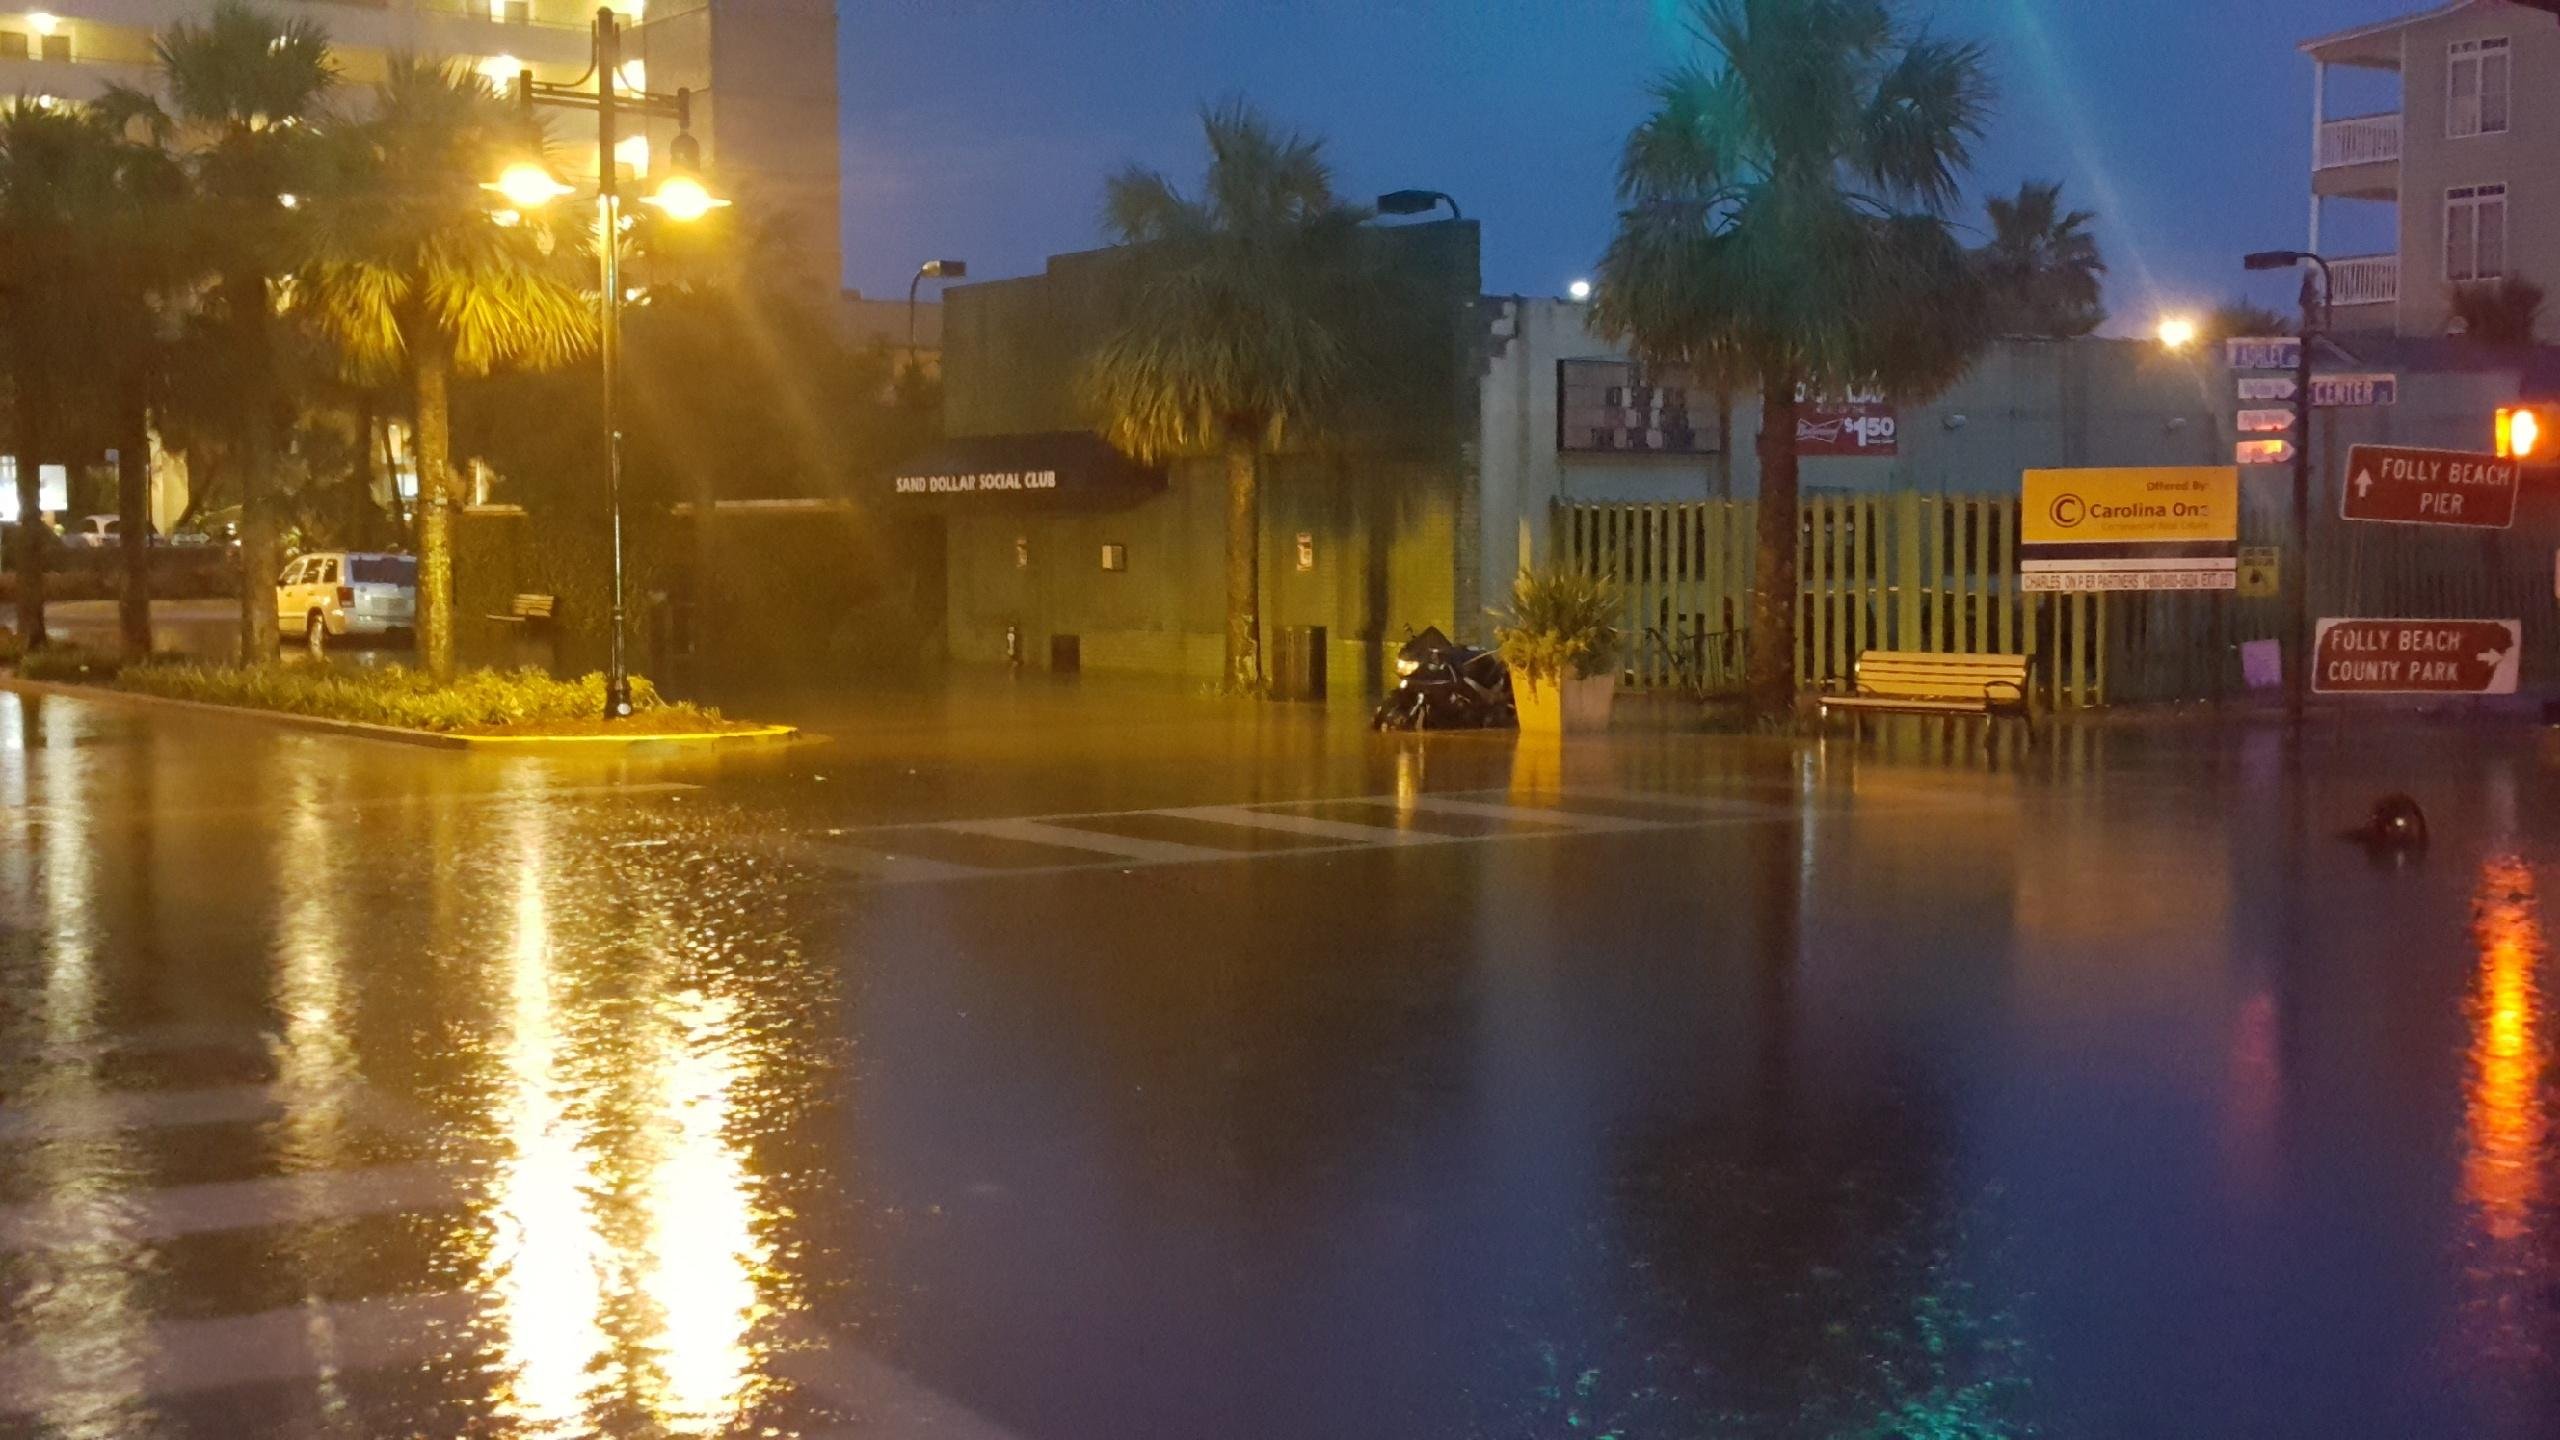 These photos of flash flooding on Folly Beach were provided by Folly Beach councilman DJ Rich.